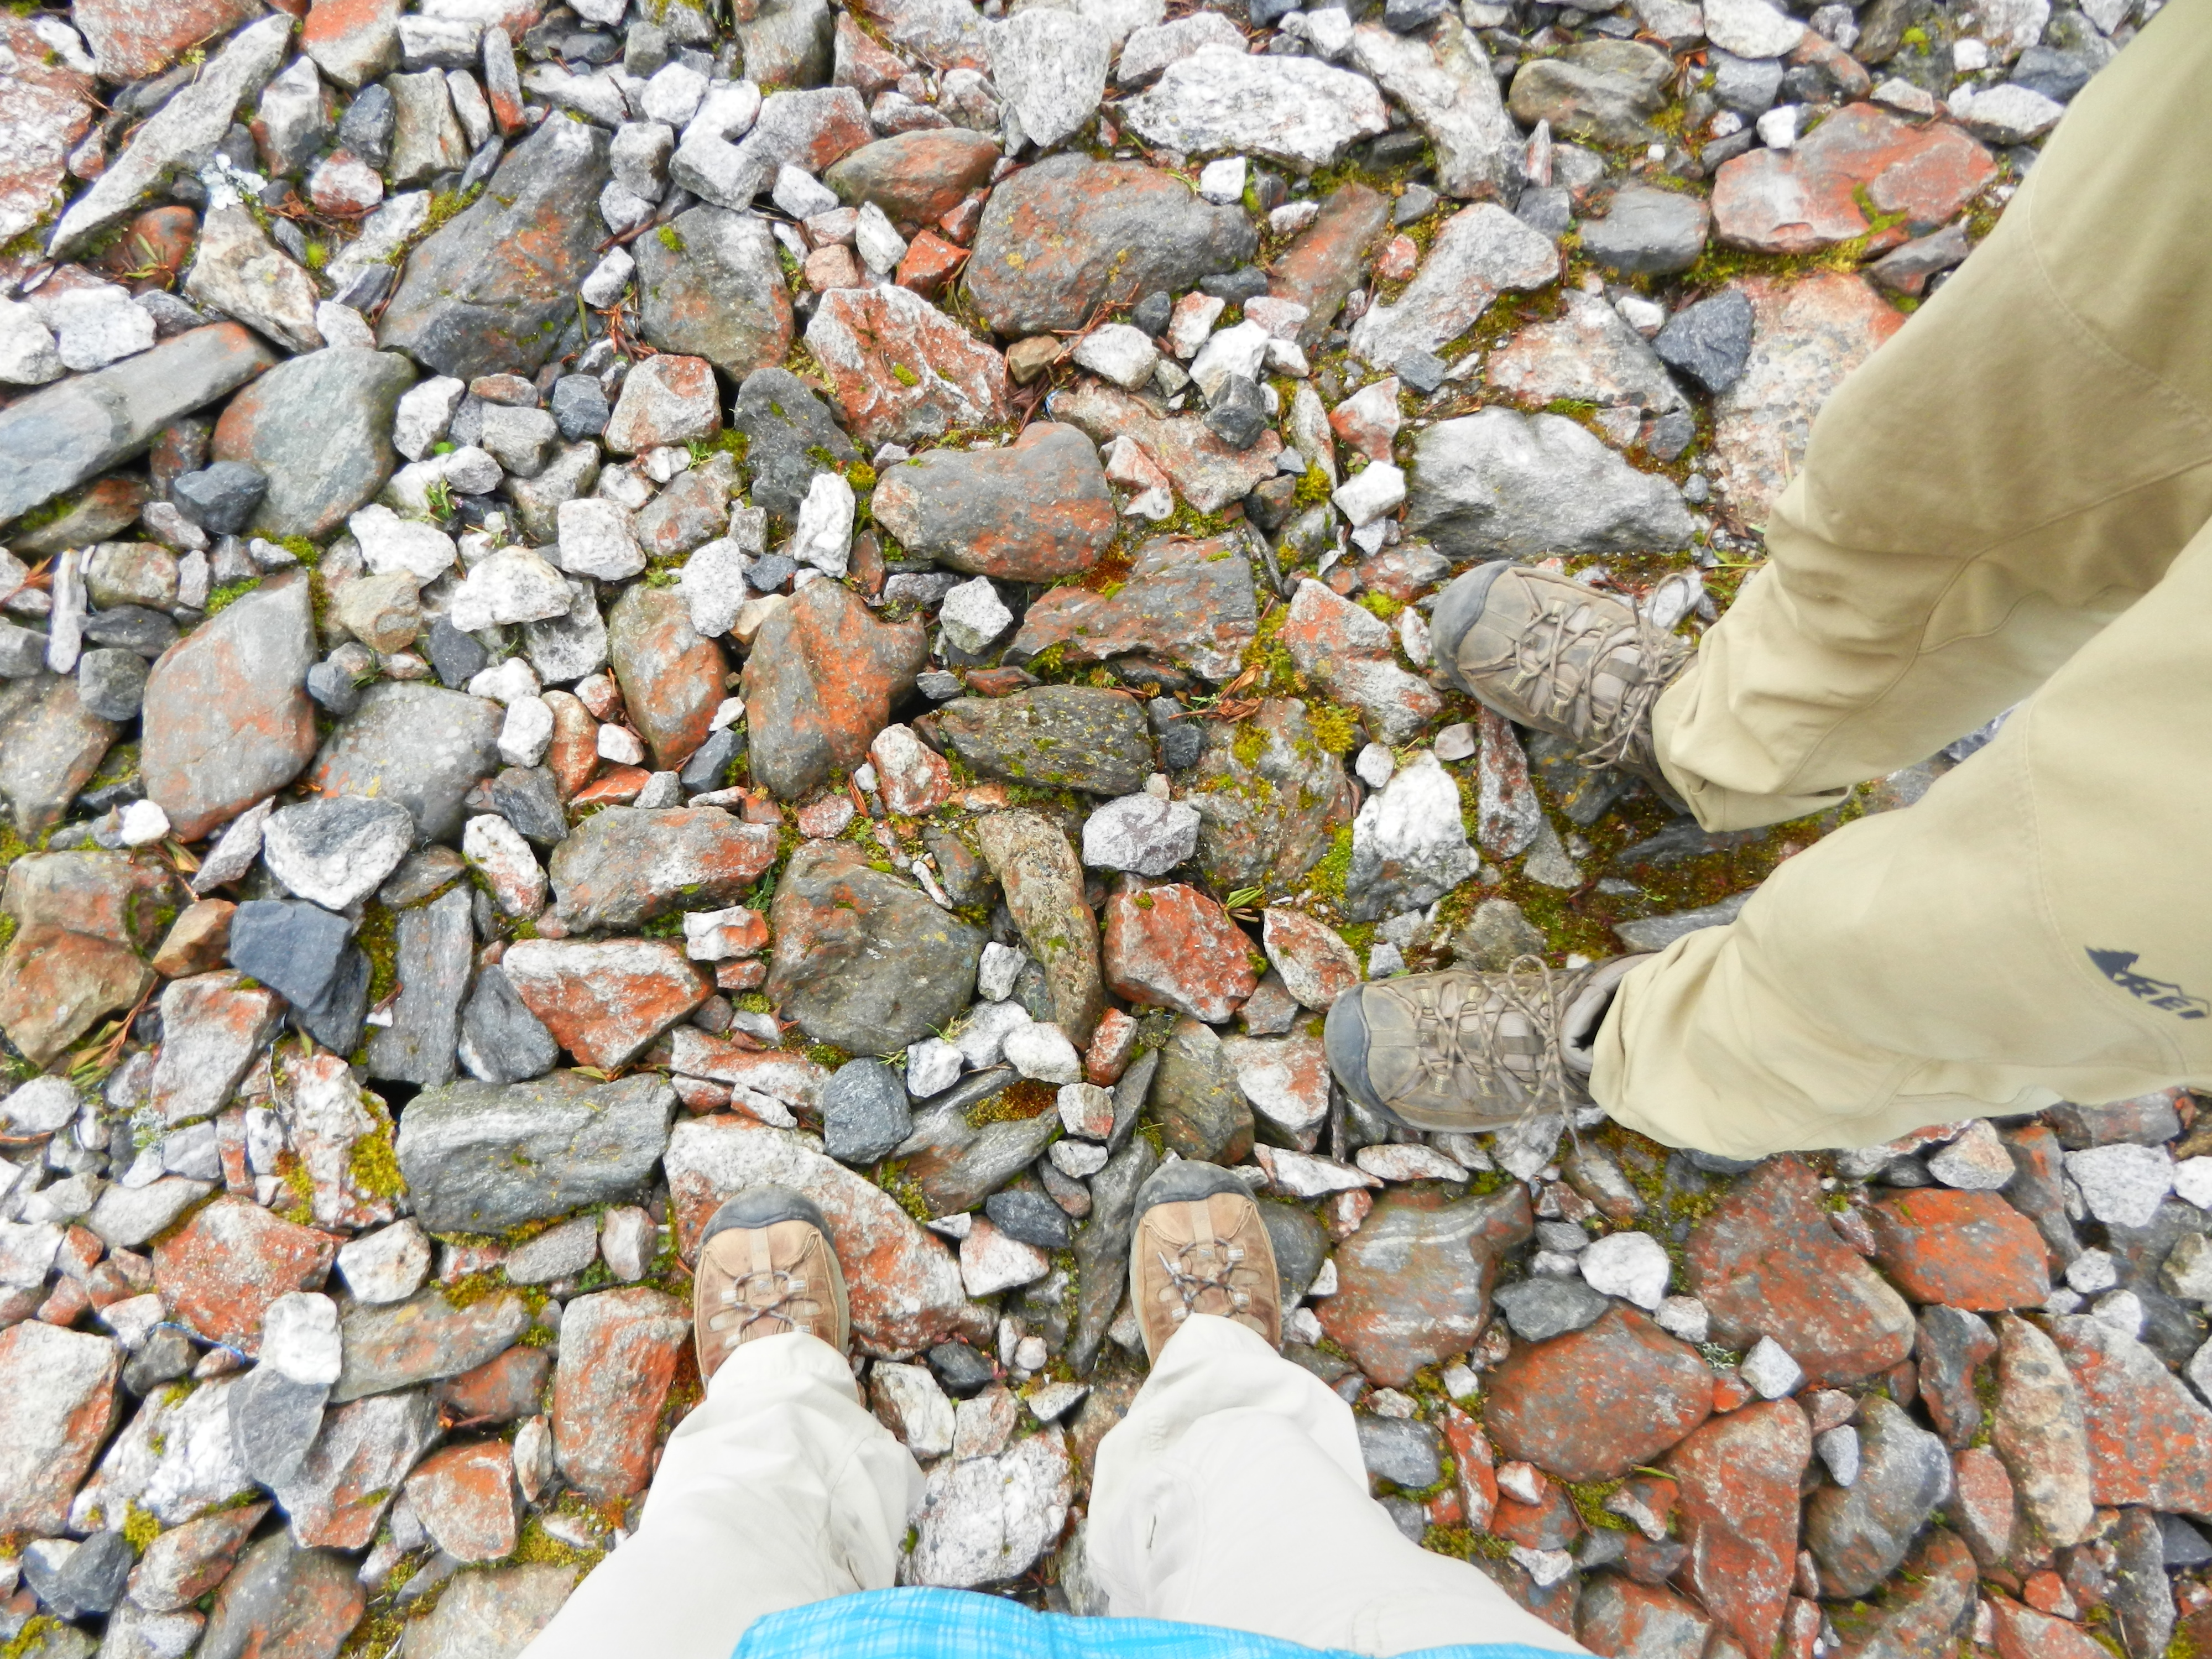 View of two people's feet wearing hiking boots and standing on multicolored rocks